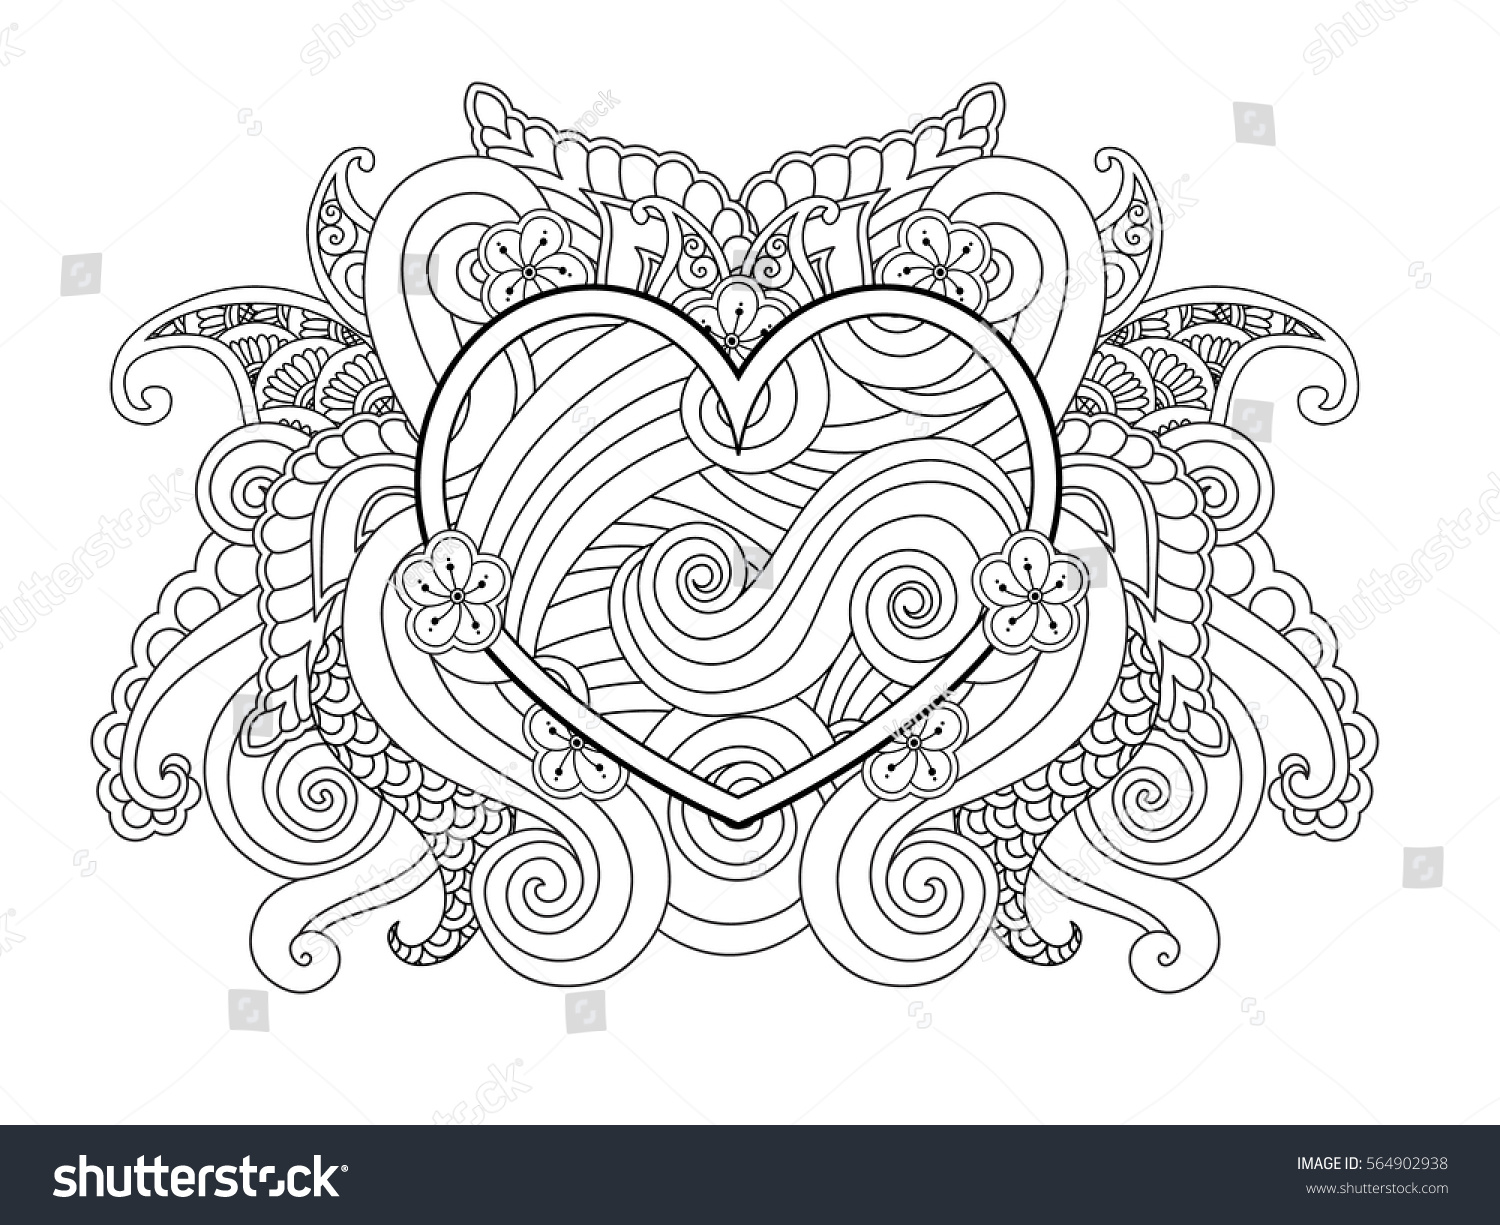 coloring page heart abstract element isolated stock illustration